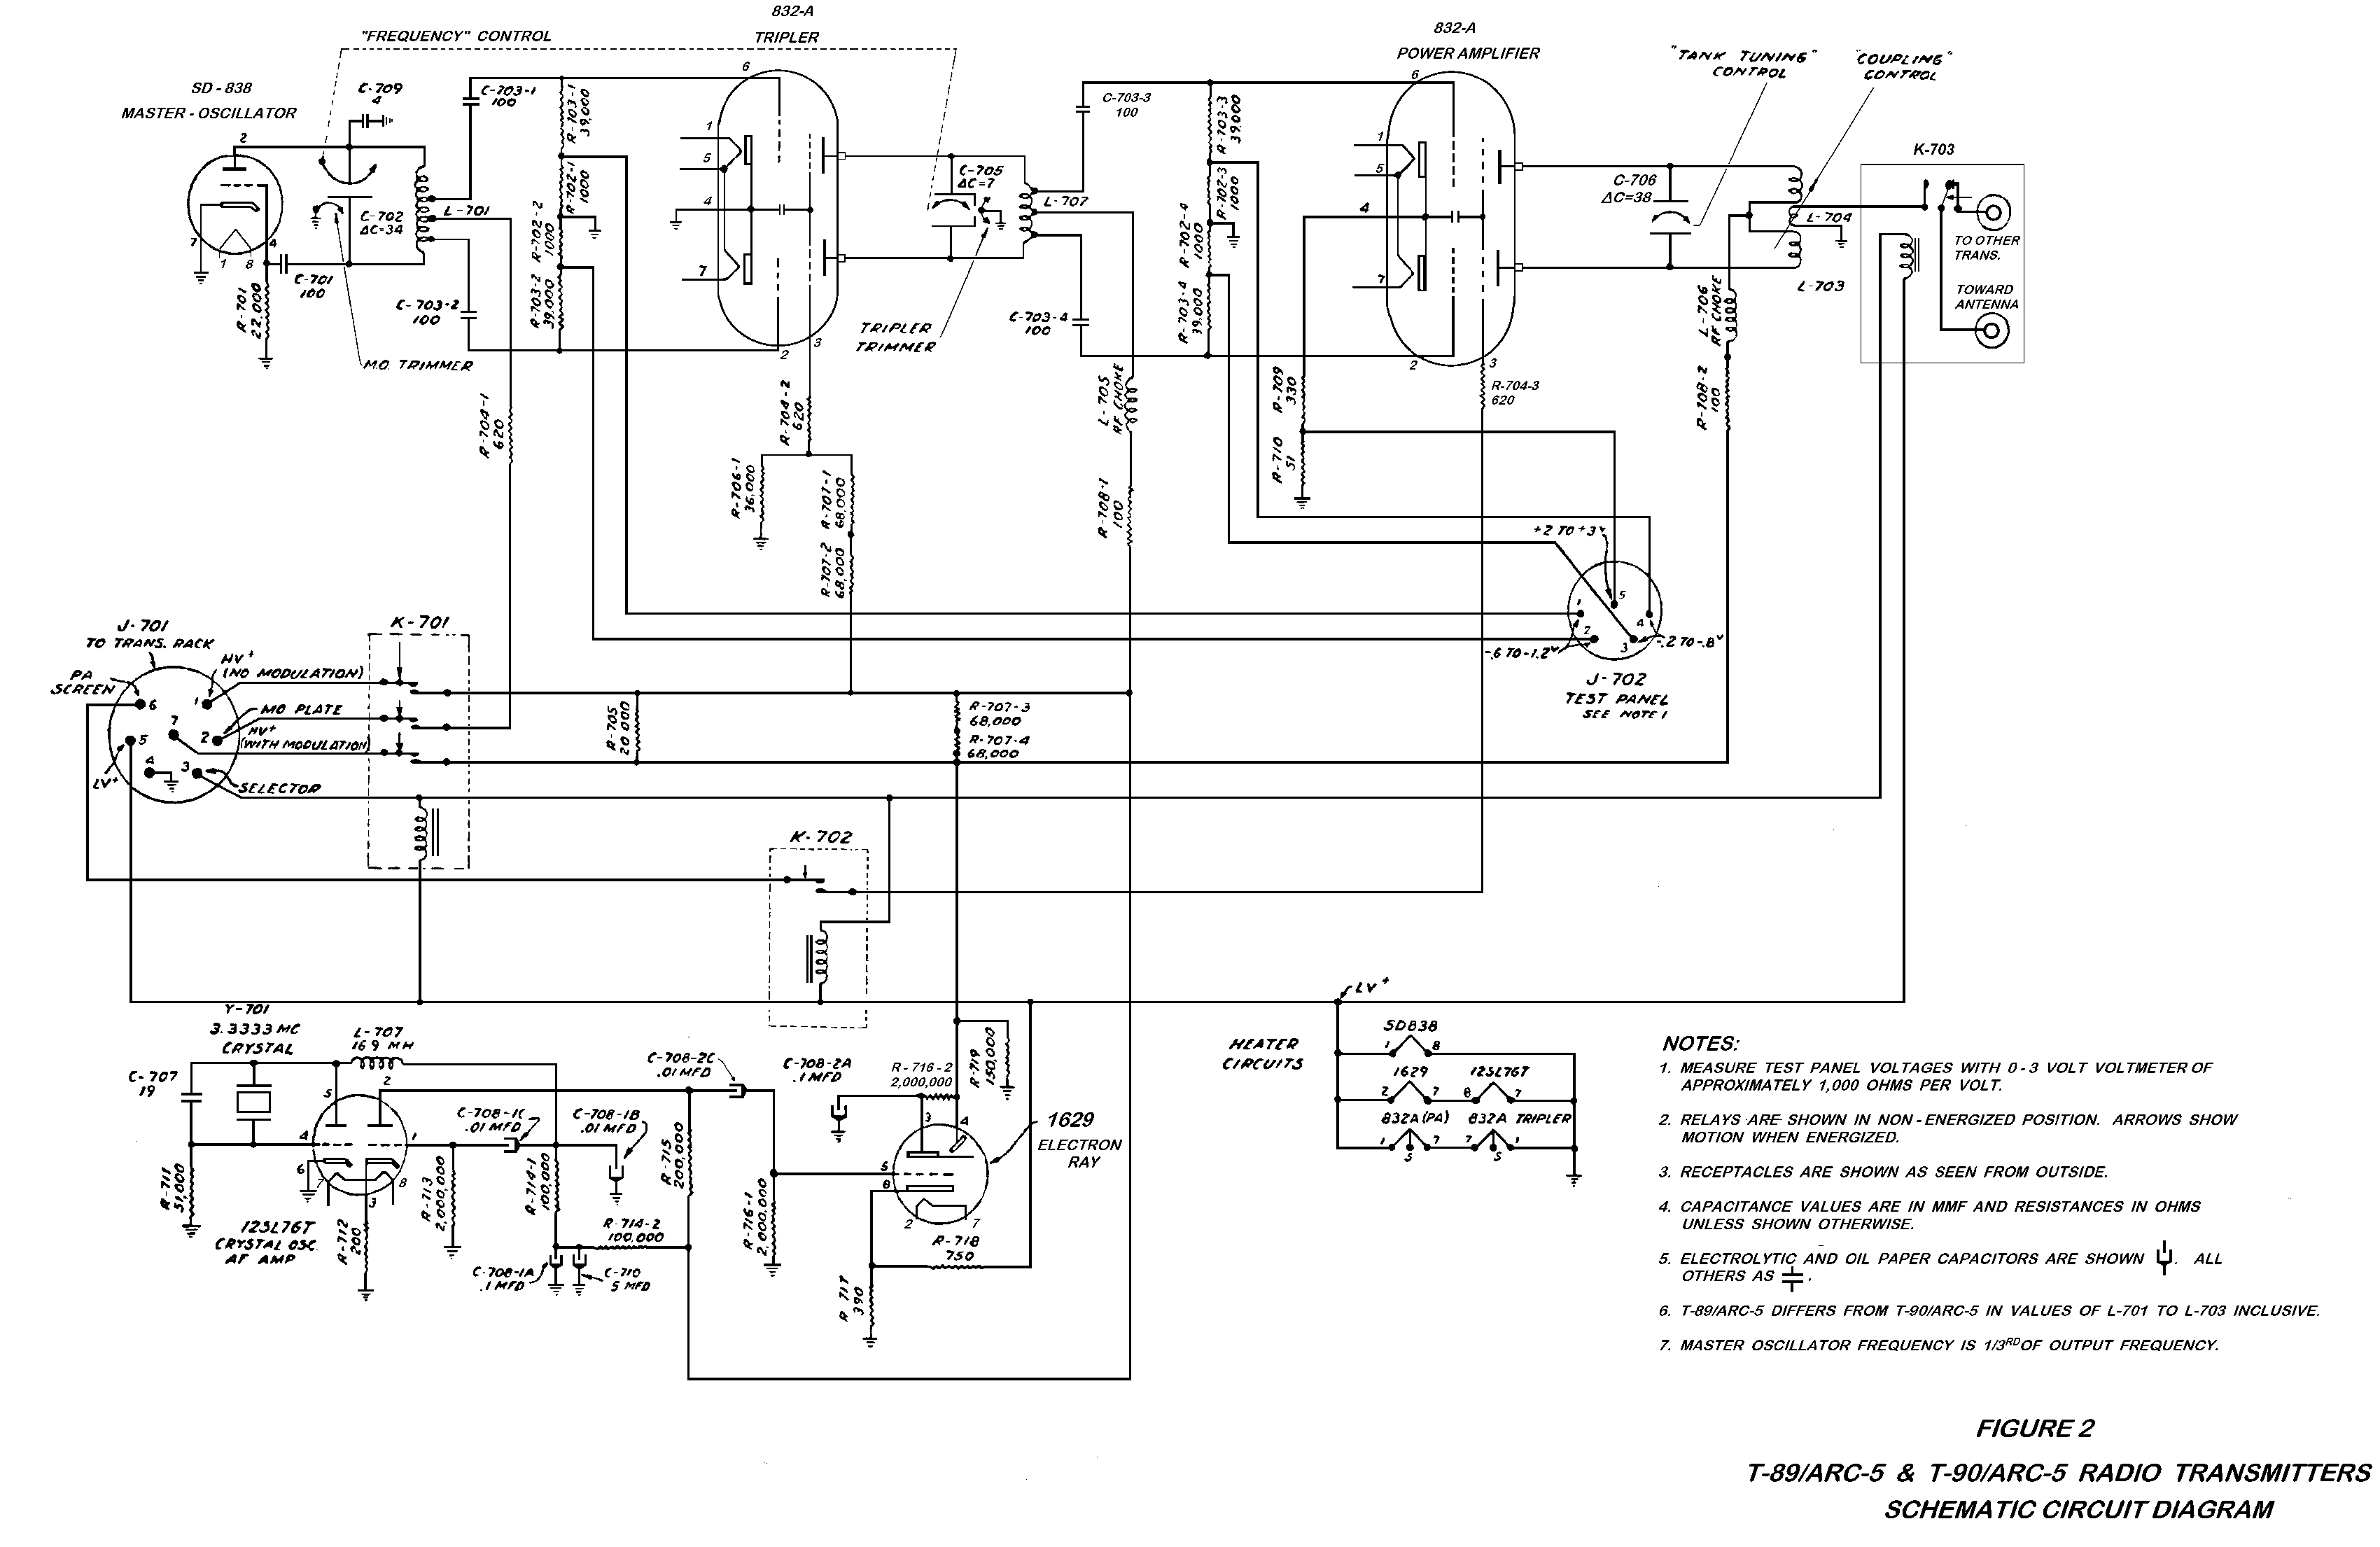 Not So Common Documentation Systems Wiring Diagram Additionally Fm Radio Receiver Circuit Tunable Vhf Arc 5 Transmitter Schematic